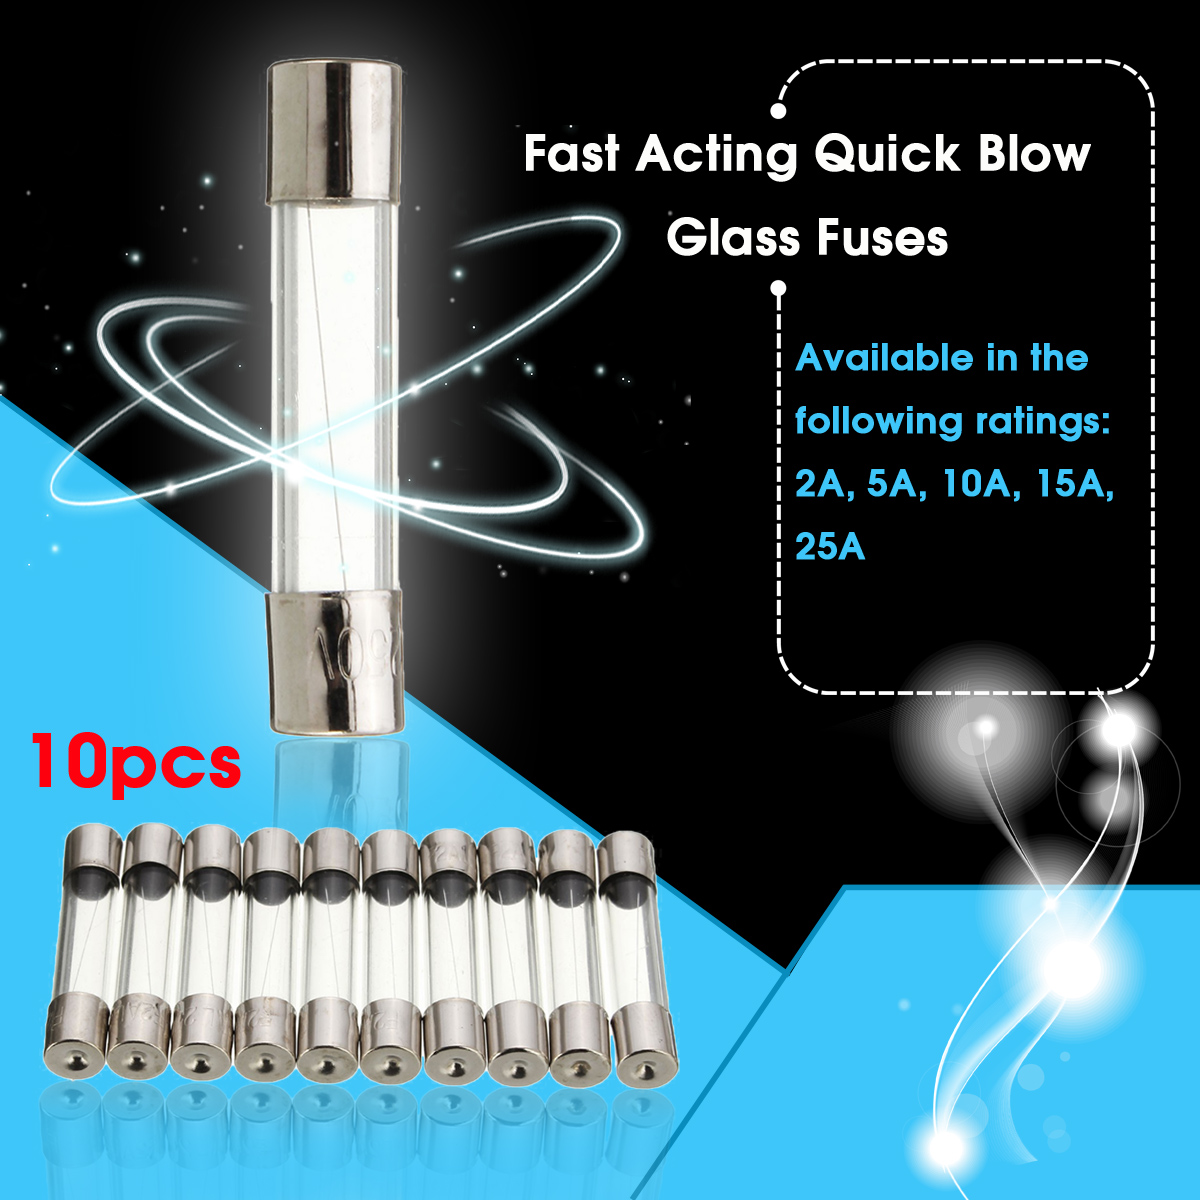 10Pcs/lot AC 220V Quick/Fast Blow Glass Fuse Fuses 2A 5A 10A 15A 25A 35A 50A Fast Quick Blow Glass Tube Fuse Assortment Kit